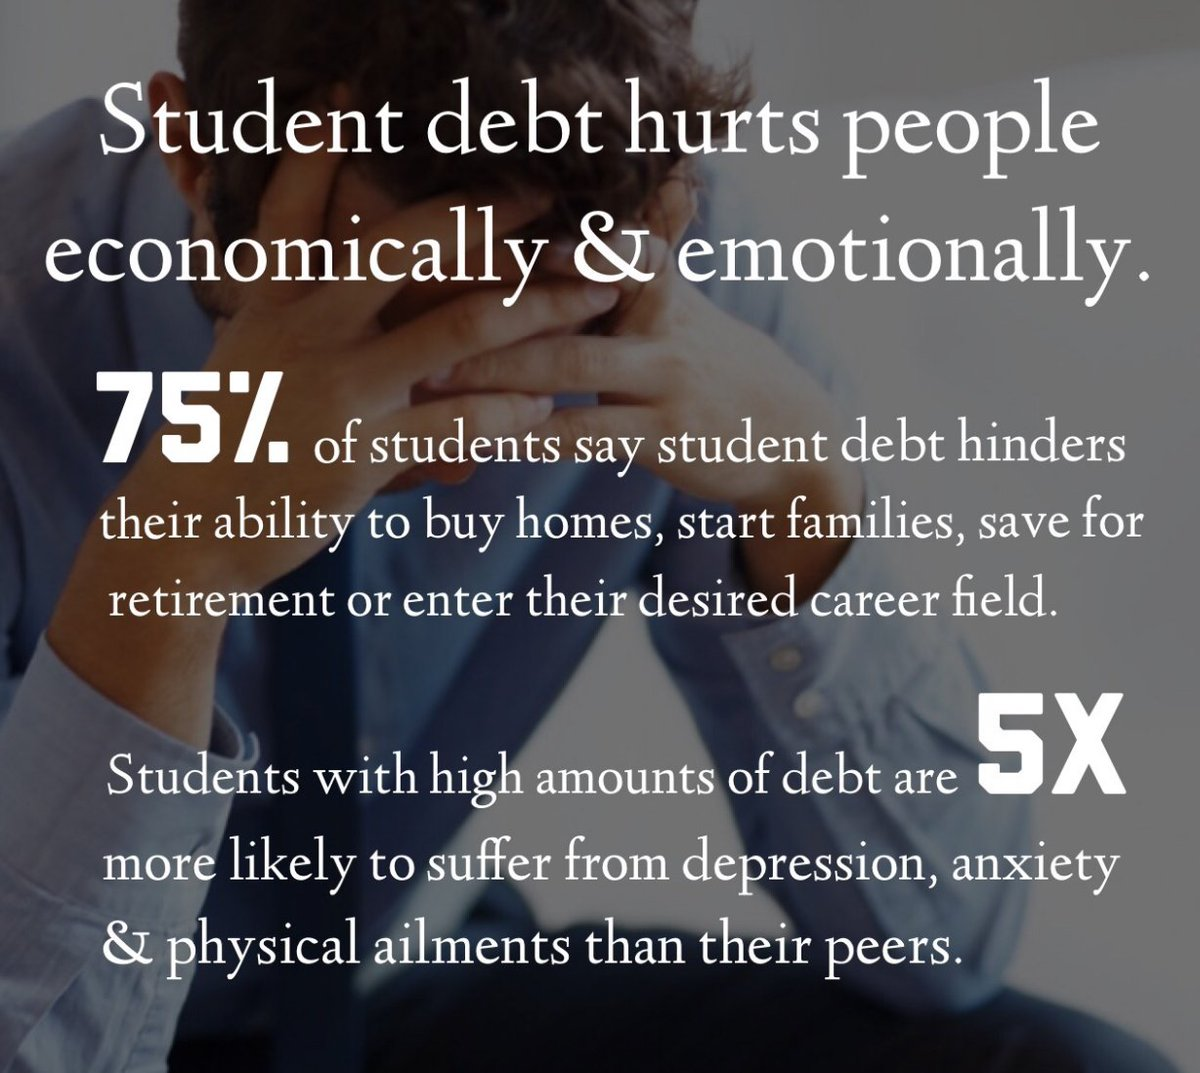 The REAL impact of student debt is more...